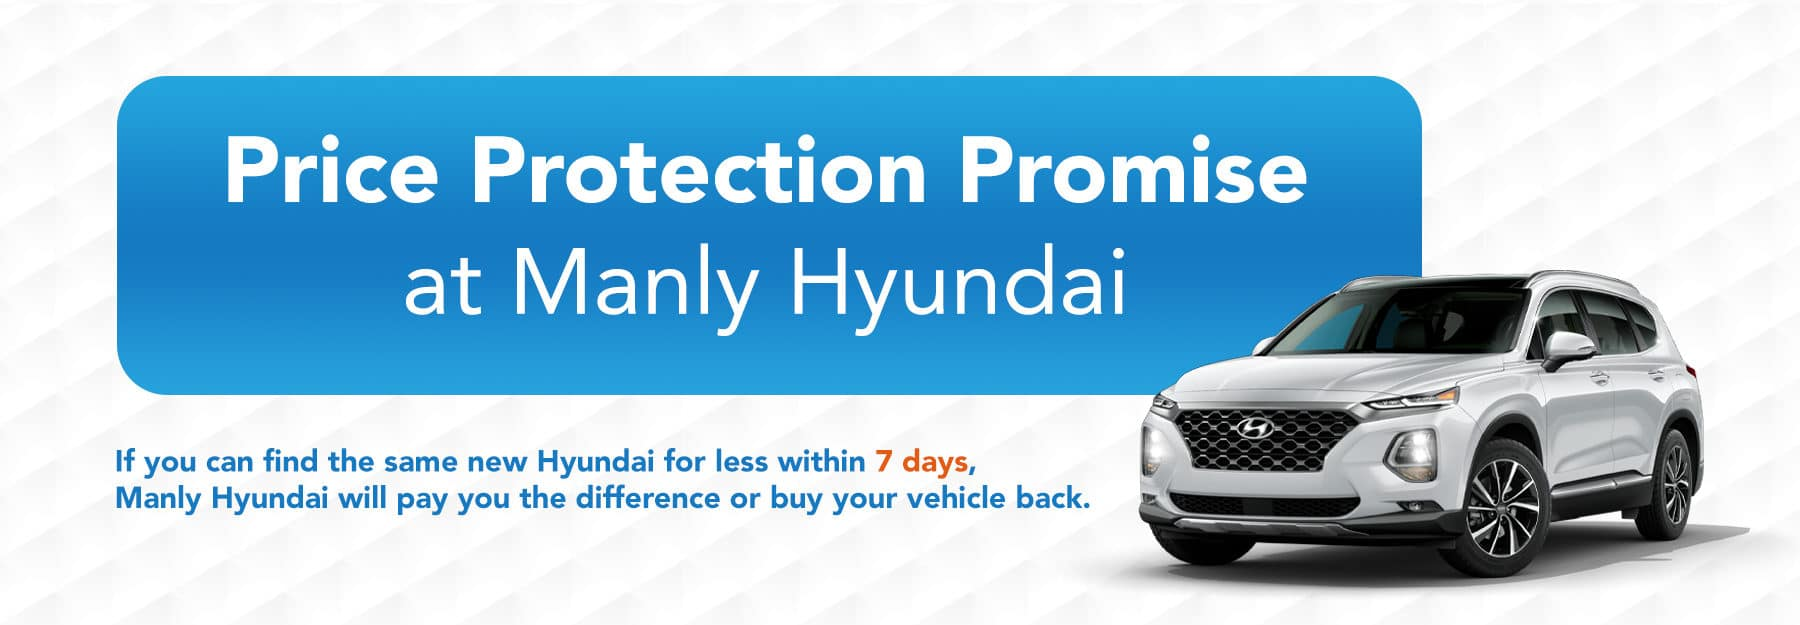 Price Protection Promise